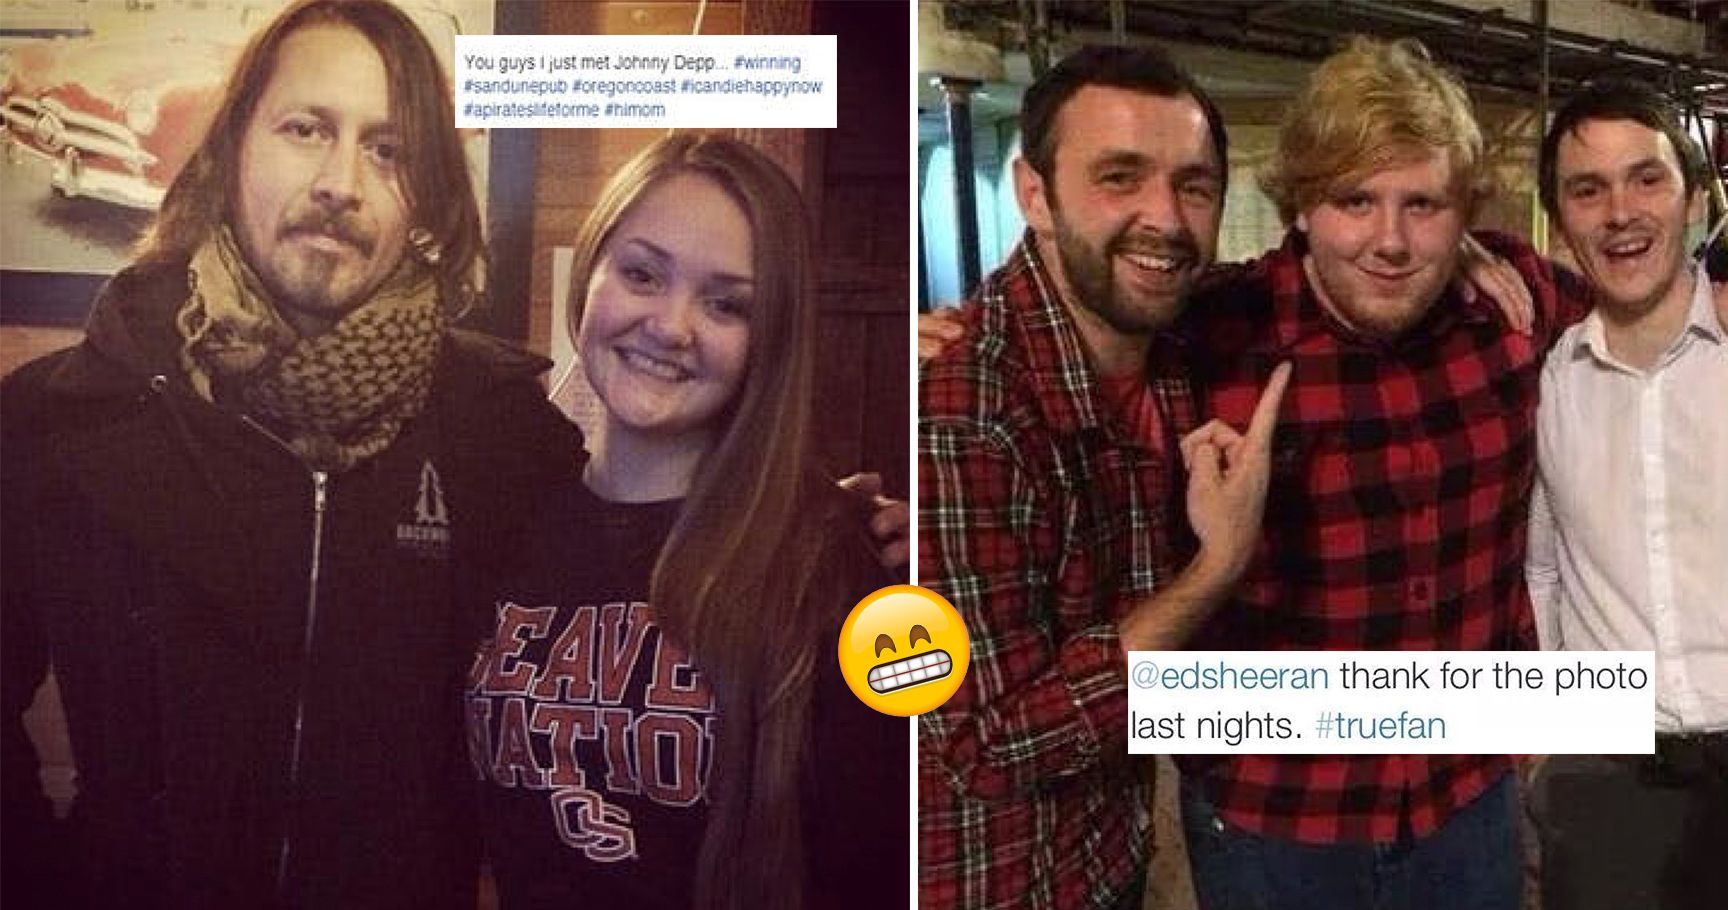 15 Clueless People Who Thought They Met Celebrities, But Were Dead Wrong